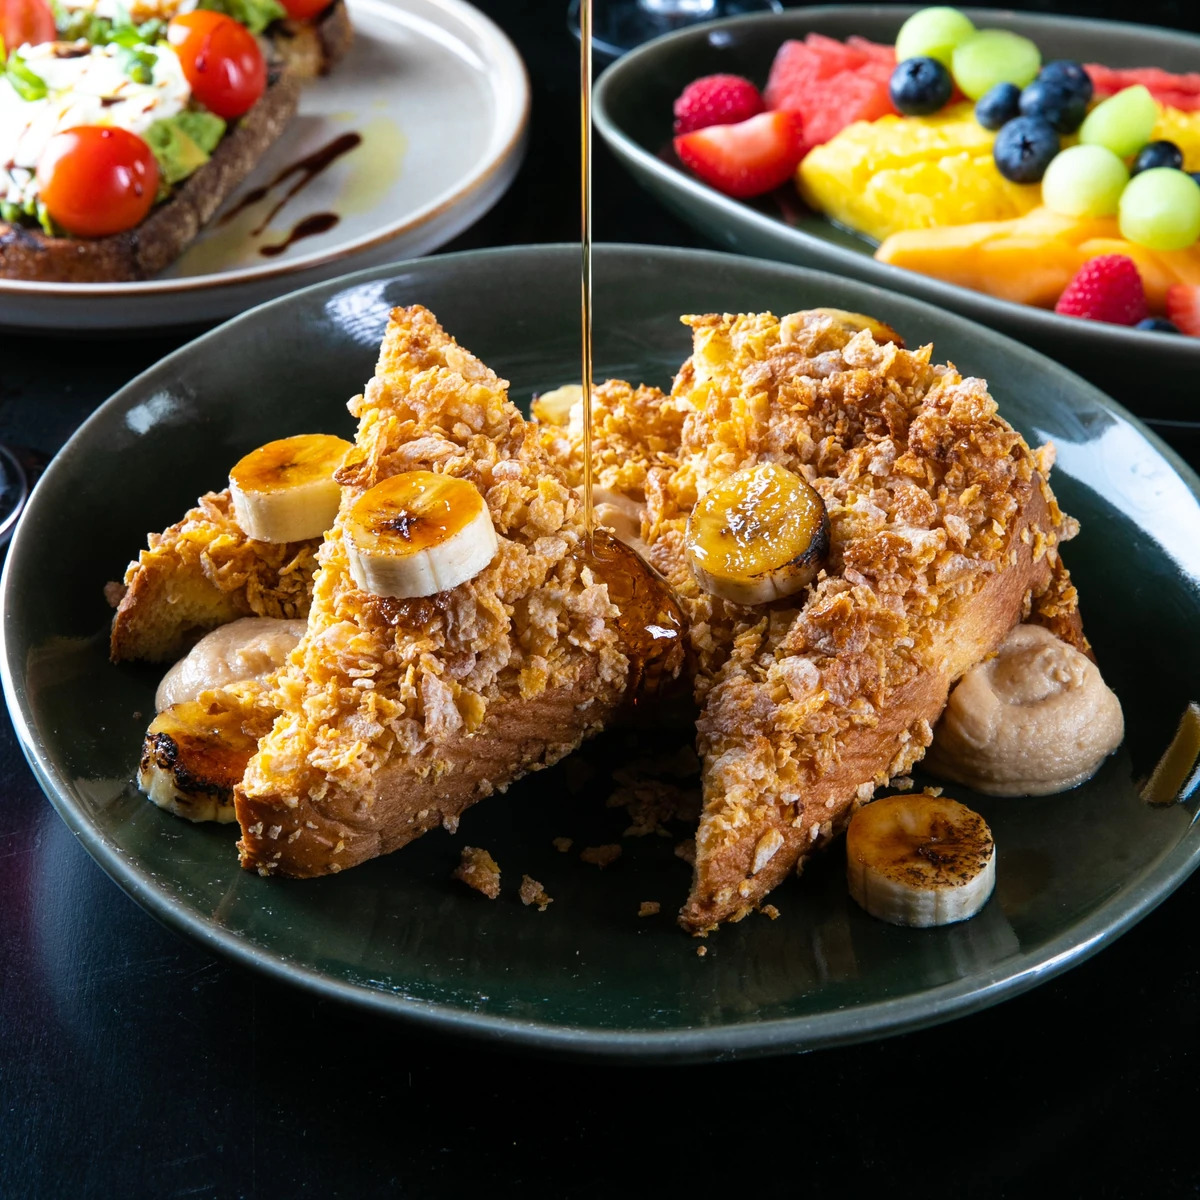 A plate of Froste Flakes-crusted French toast